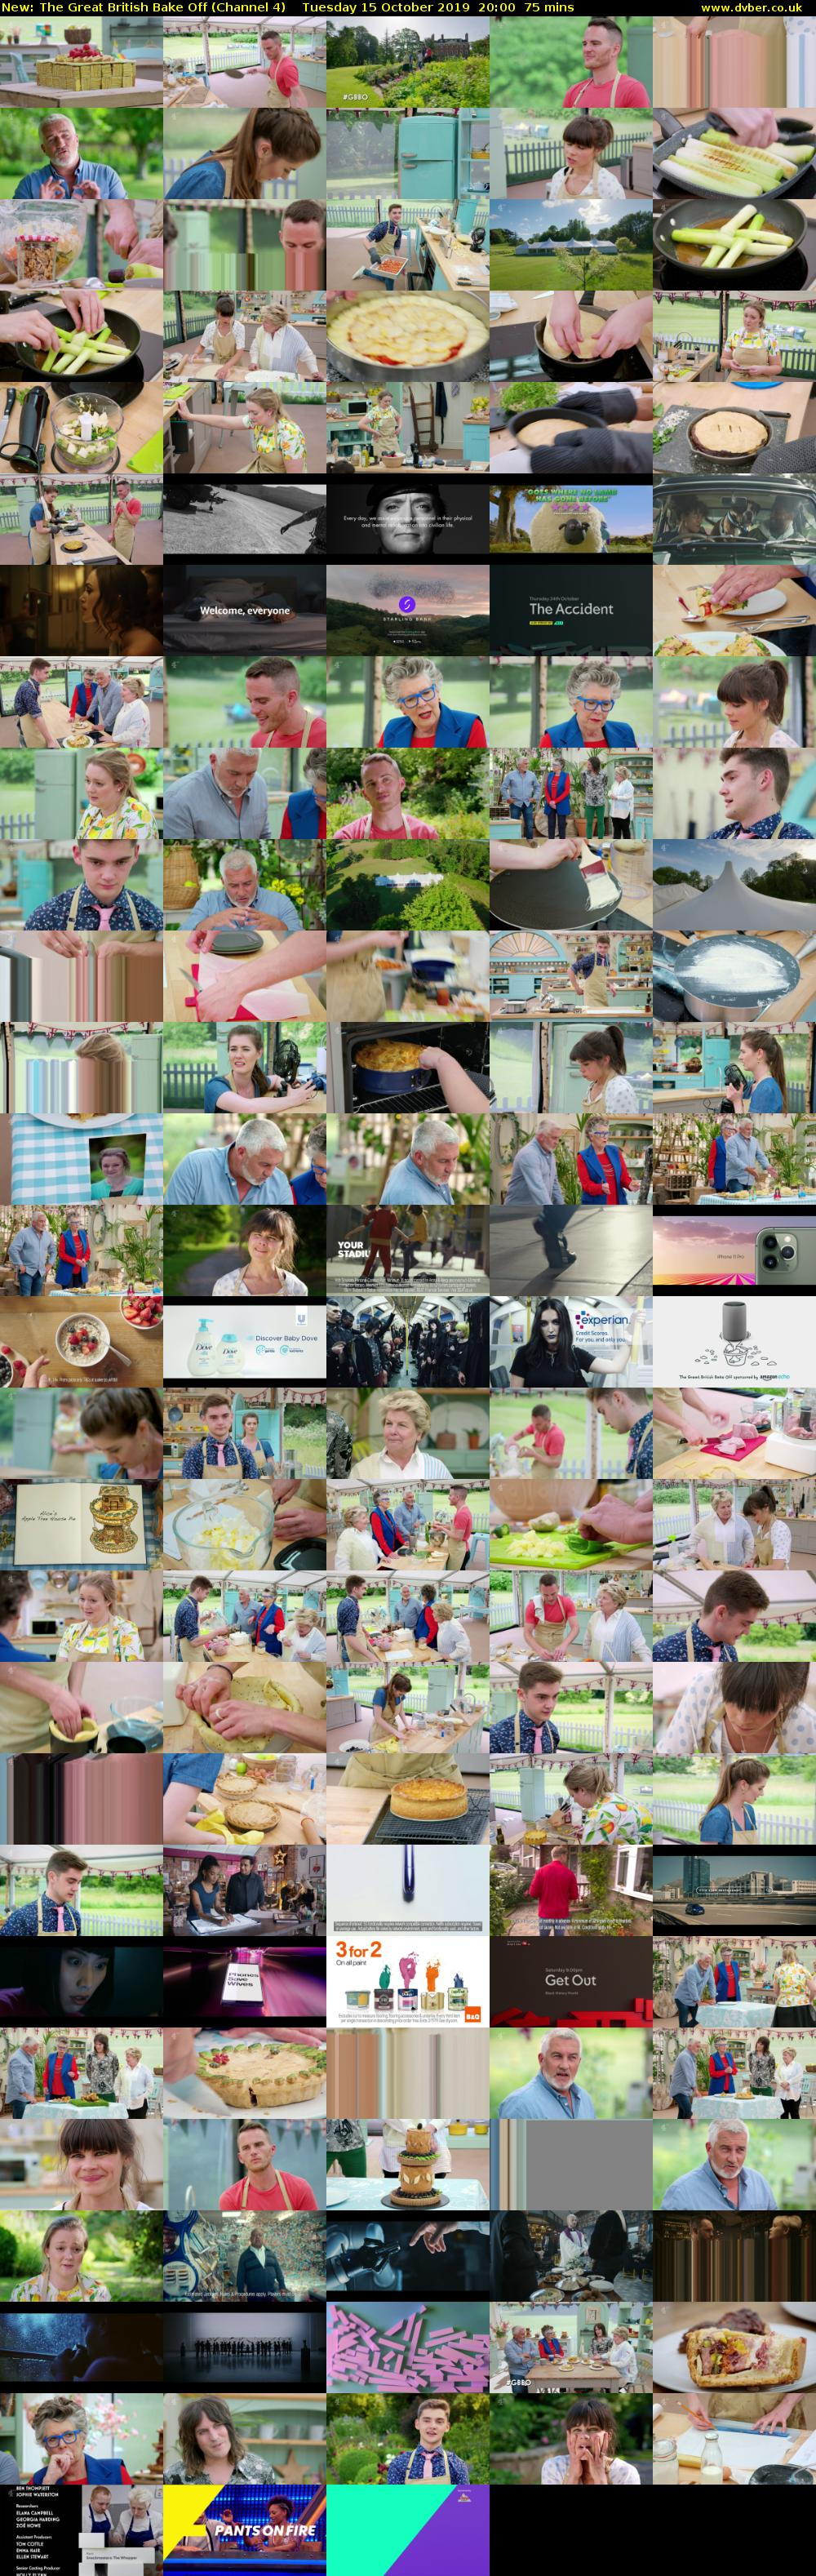 The Great British Bake Off (Channel 4 HD) - 2019-10-15-2000